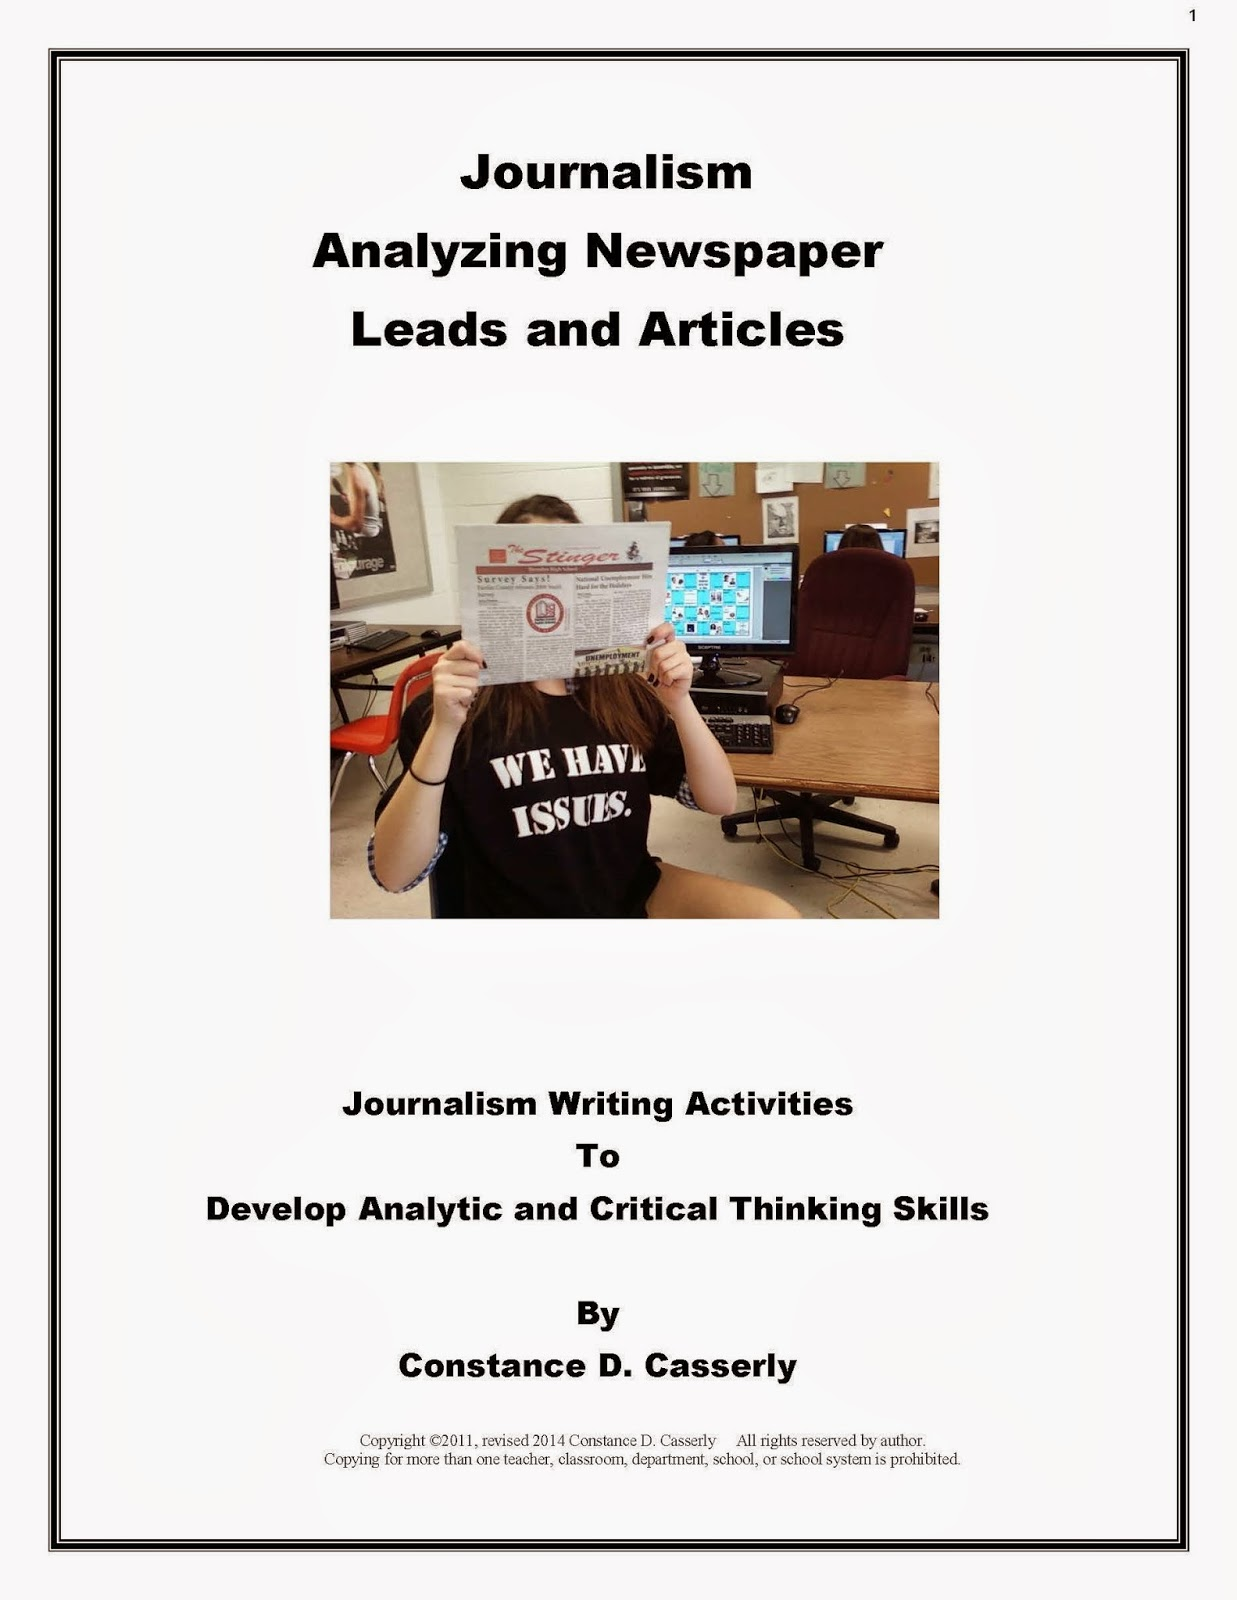 Journalism: Analyzing Newspaper Leads and Articles